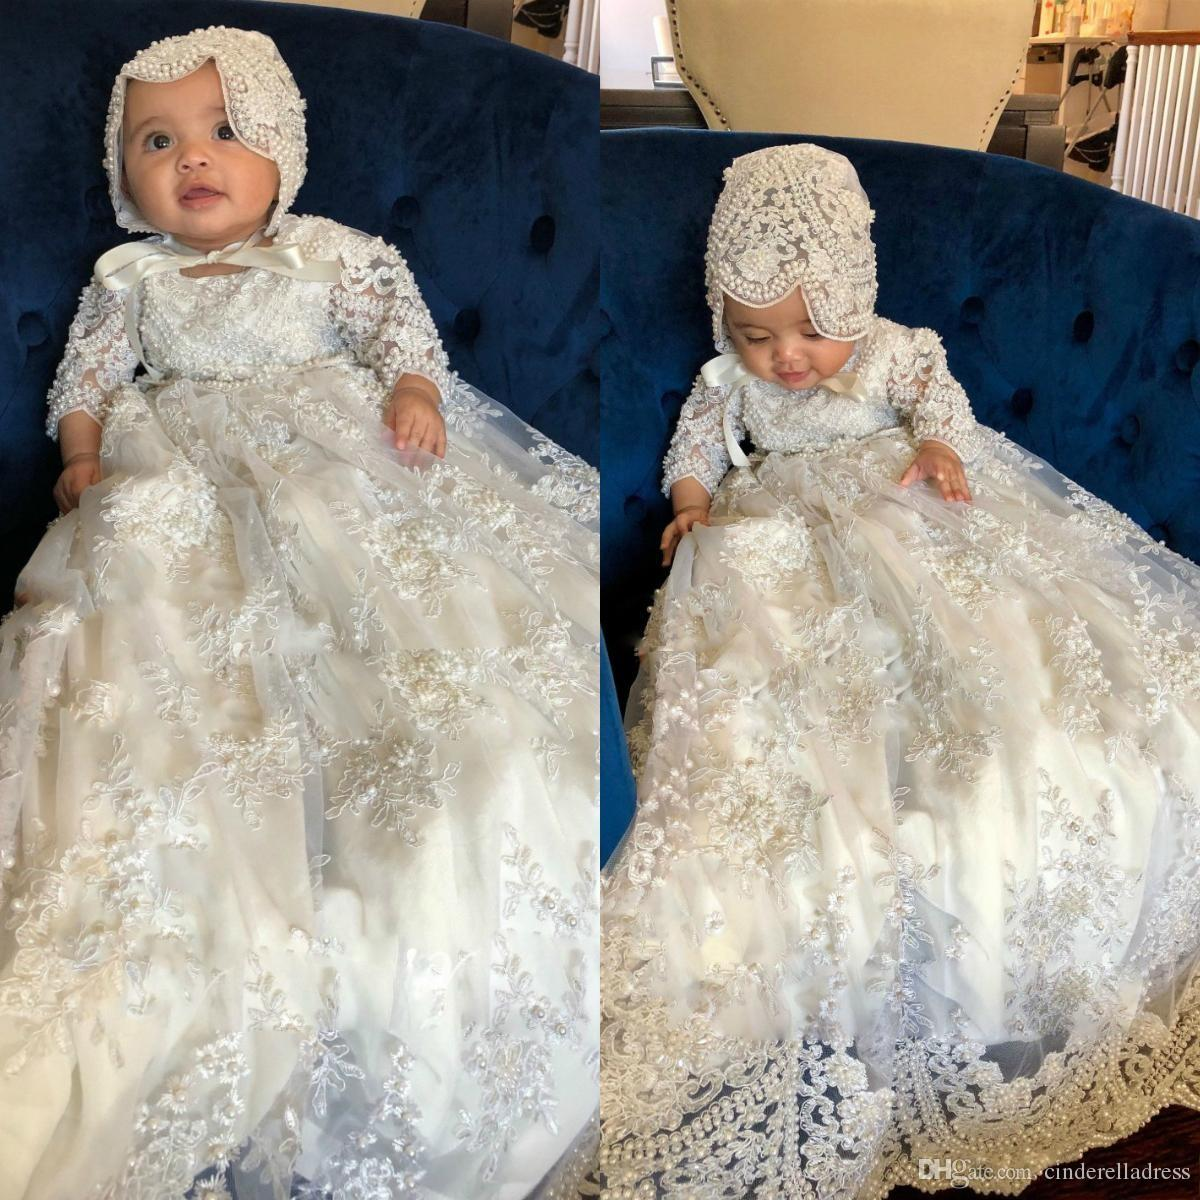 Pretty 2019 Long Sleeve Christening Gowns For Baby Girls Lace Appliqued Pearls Baptism Dresses With Bonnet First Communication Dress